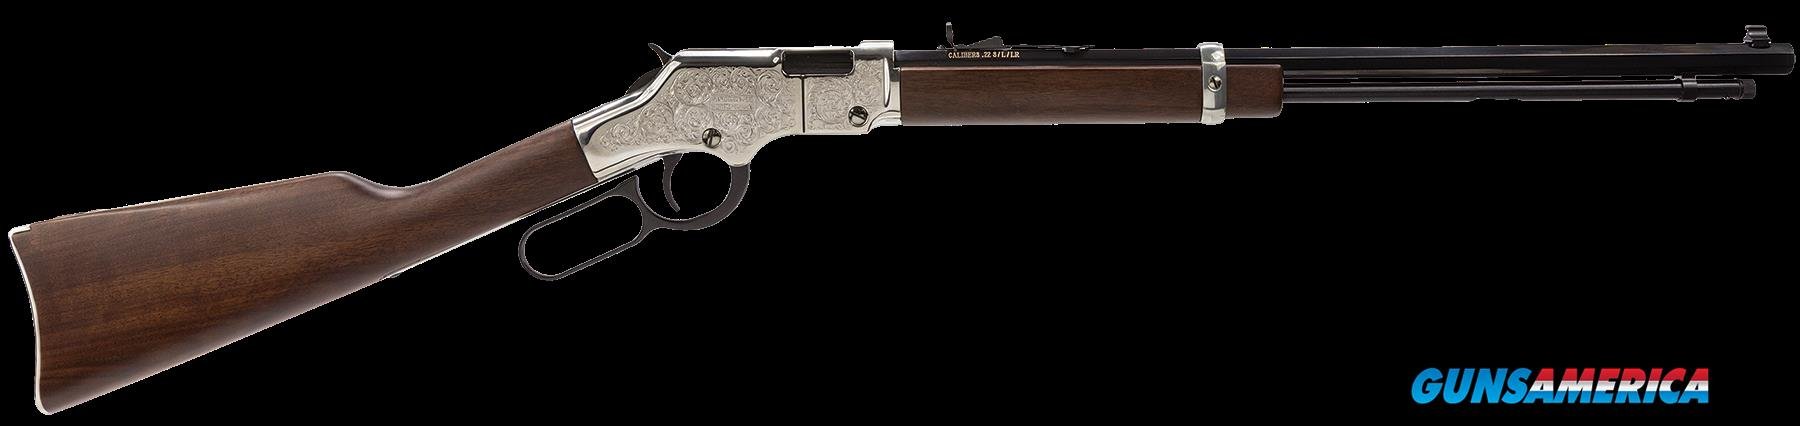 "Henry H004SE Engraved Silver Eagle Lever 22 Short/Long/Long Rifle 20"" 16+1 American Walnut Stk Blued  Guns > Rifles > H Misc Rifles"